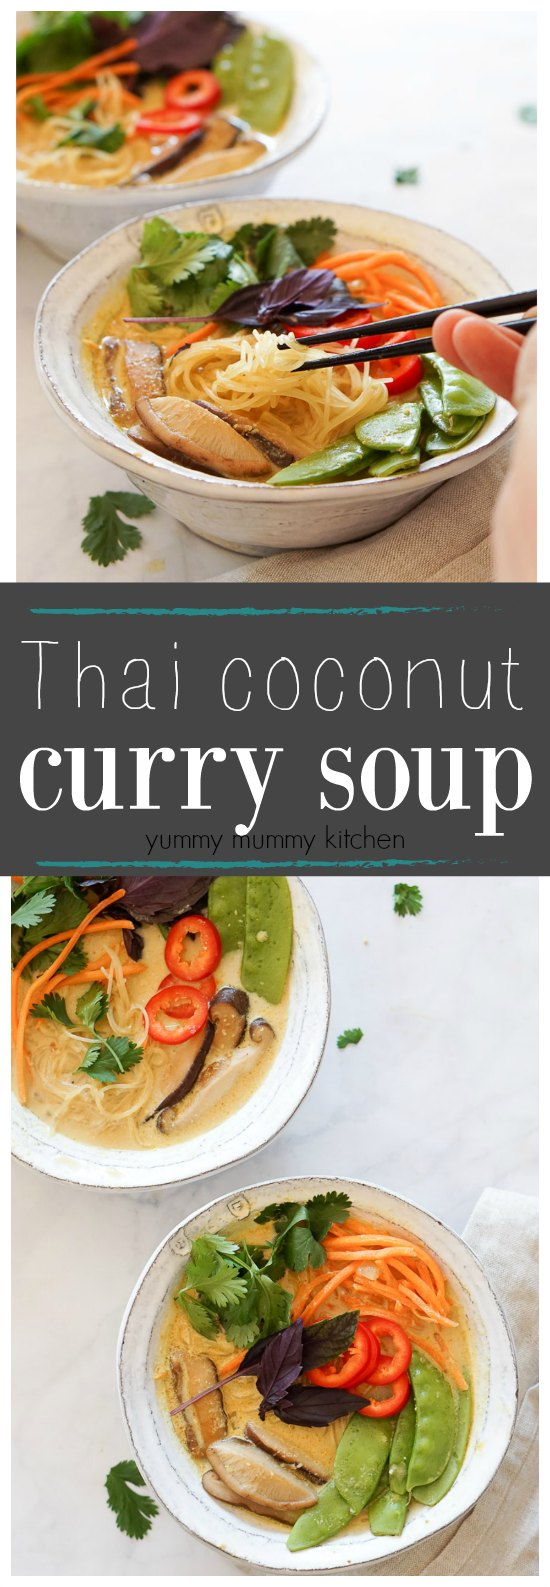 Curry soup with rice noodles, veggies, and coconut milk. This delicious and easy curry soup is #vegan.